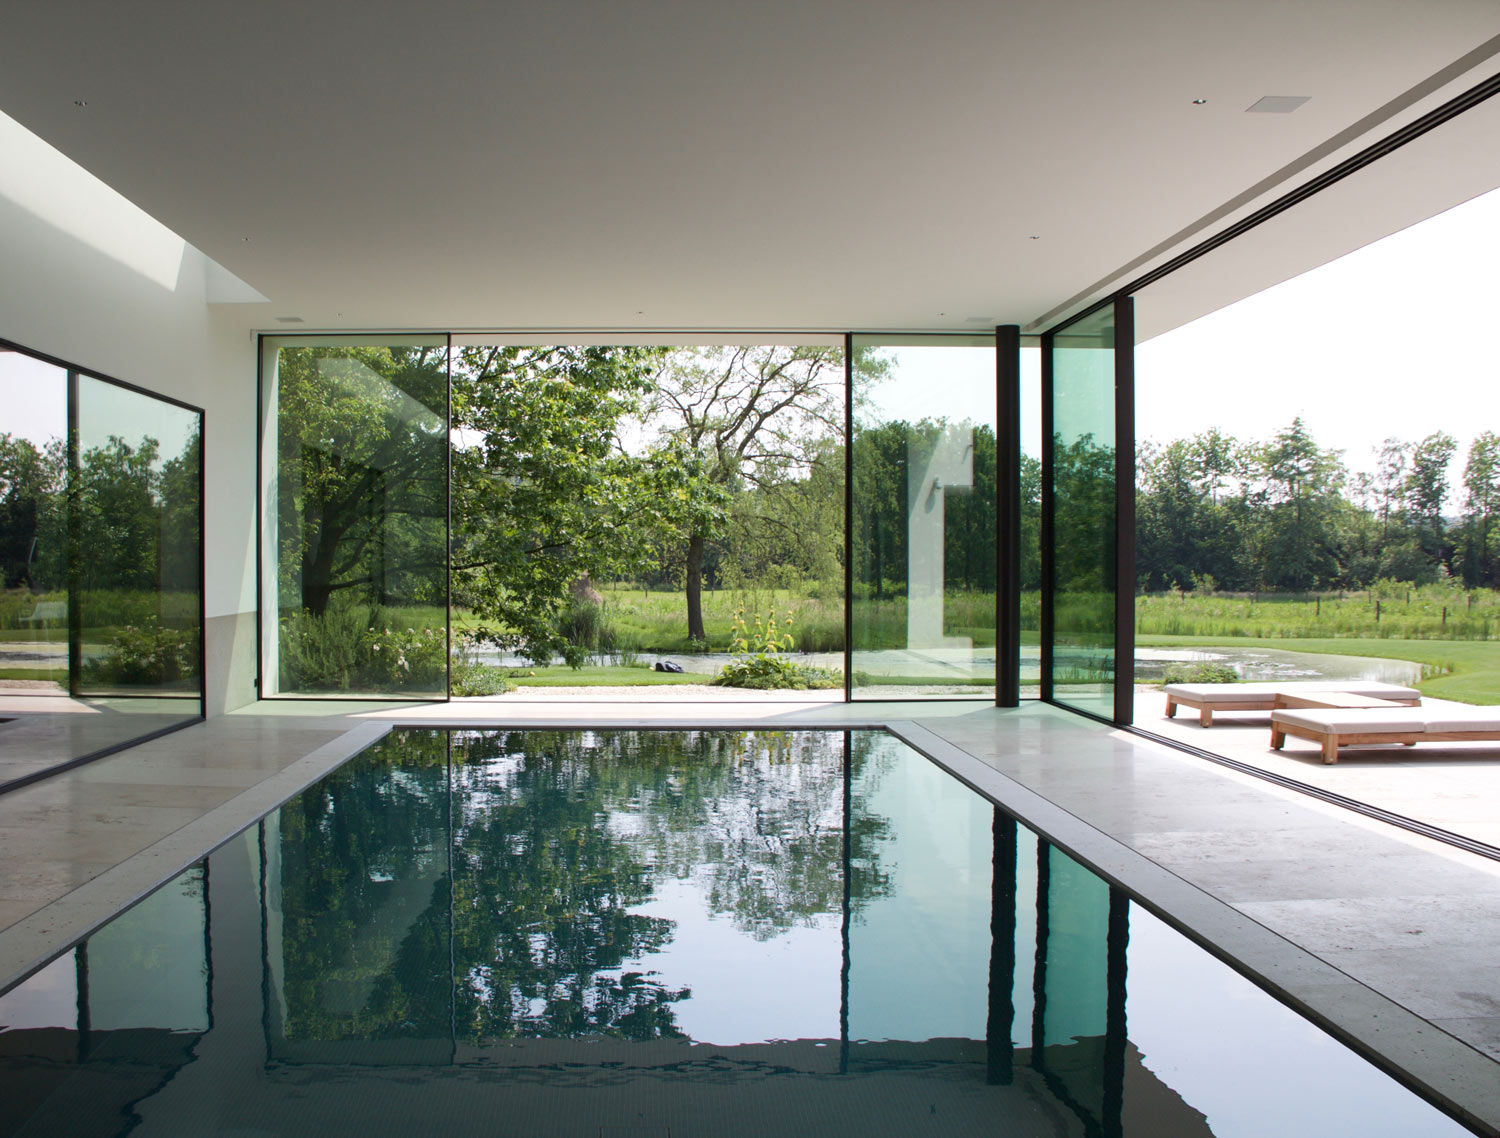 Simplicity love the ghent villa belgium dirk heveraet for Indoor pool design guide